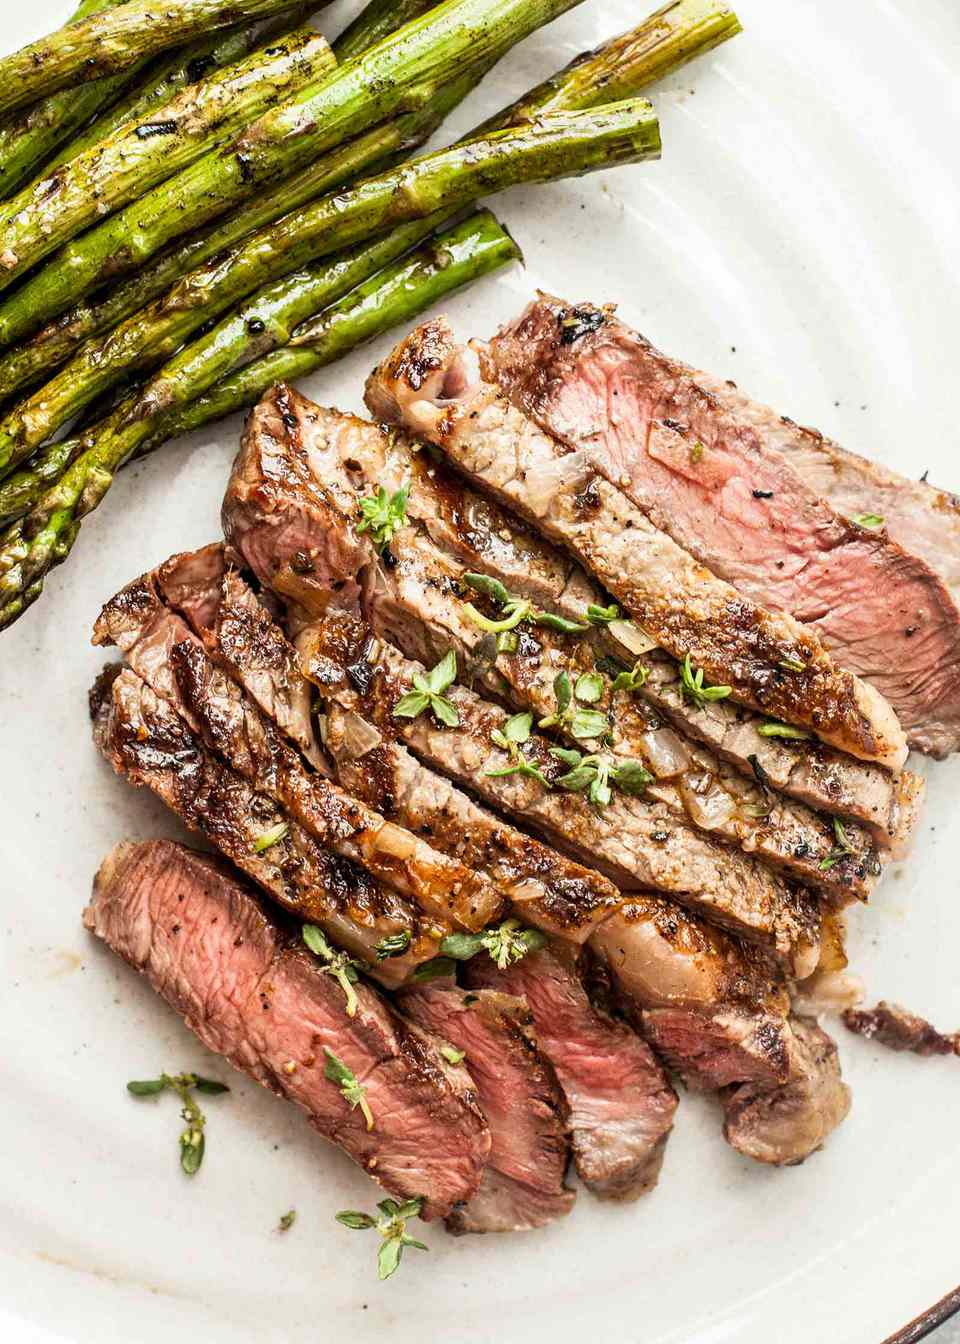 Grilled steak sliced and served on a platter with asapragus